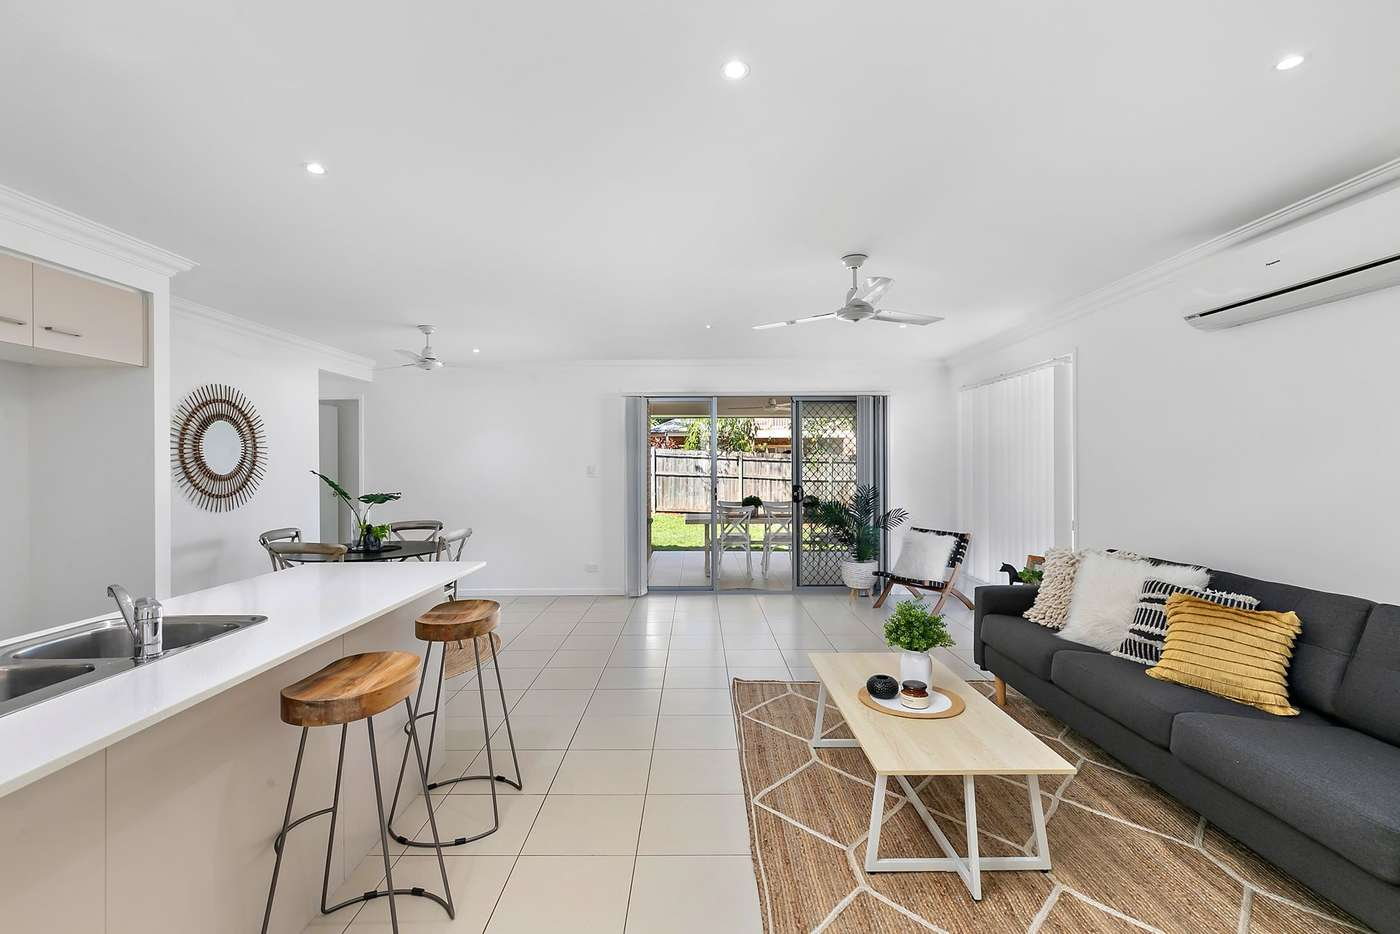 Main view of Homely house listing, 23 Lynch Crescent, Birkdale QLD 4159